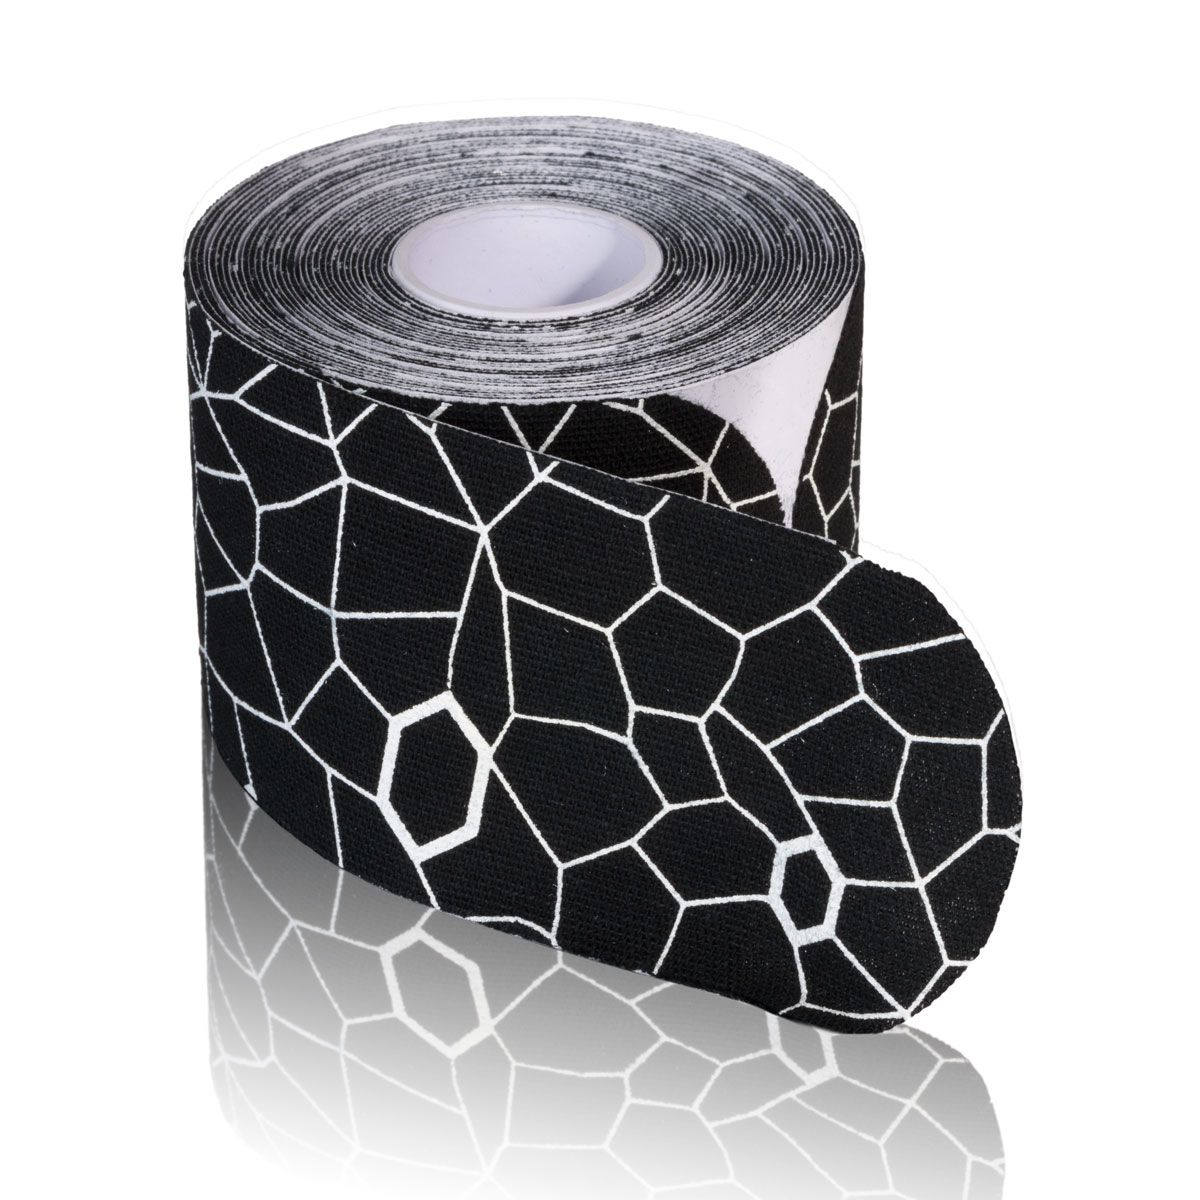 TheraBand Kinesiology Tape - (1) 2 in. x 16.4 ft. Roll - Black/White